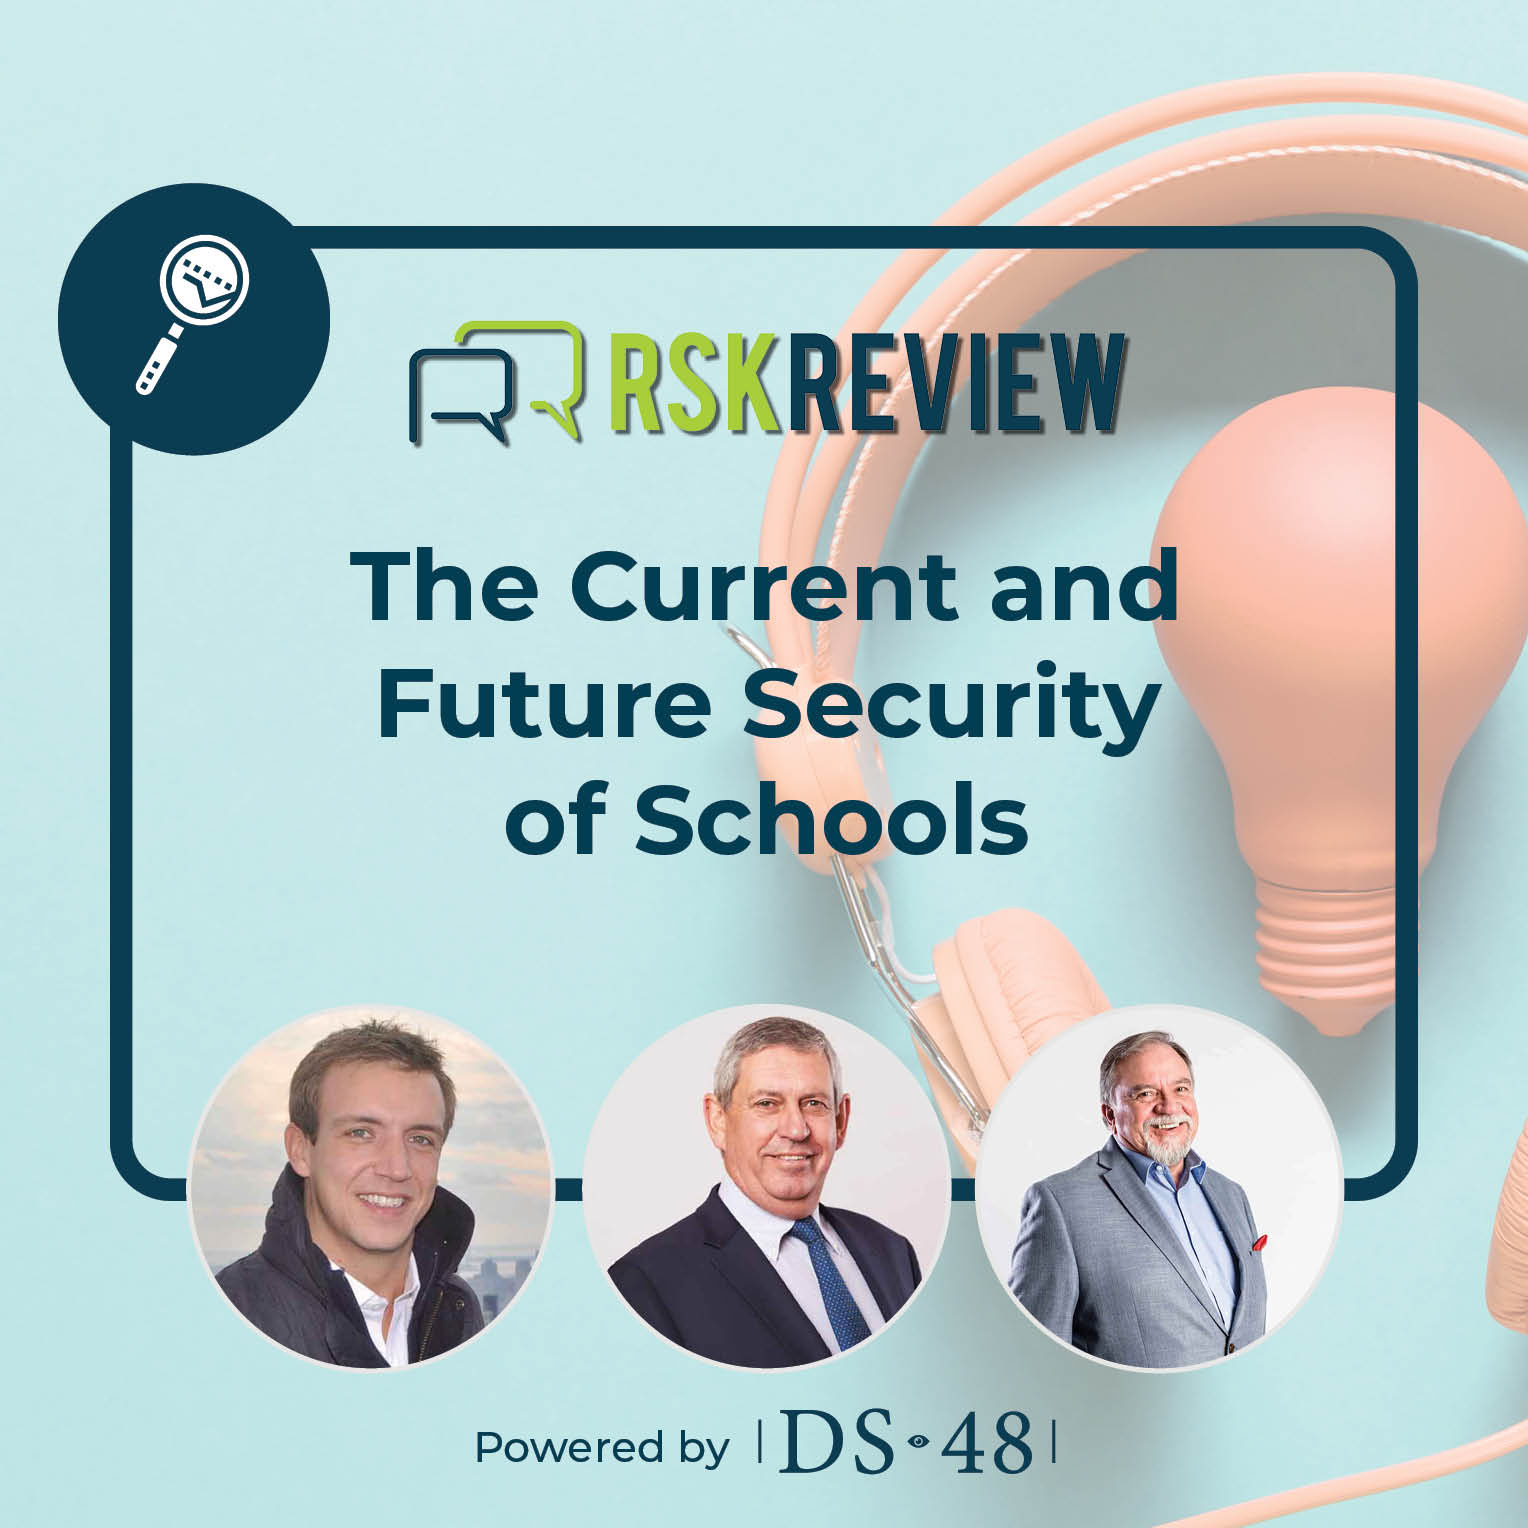 The current and future security of schools